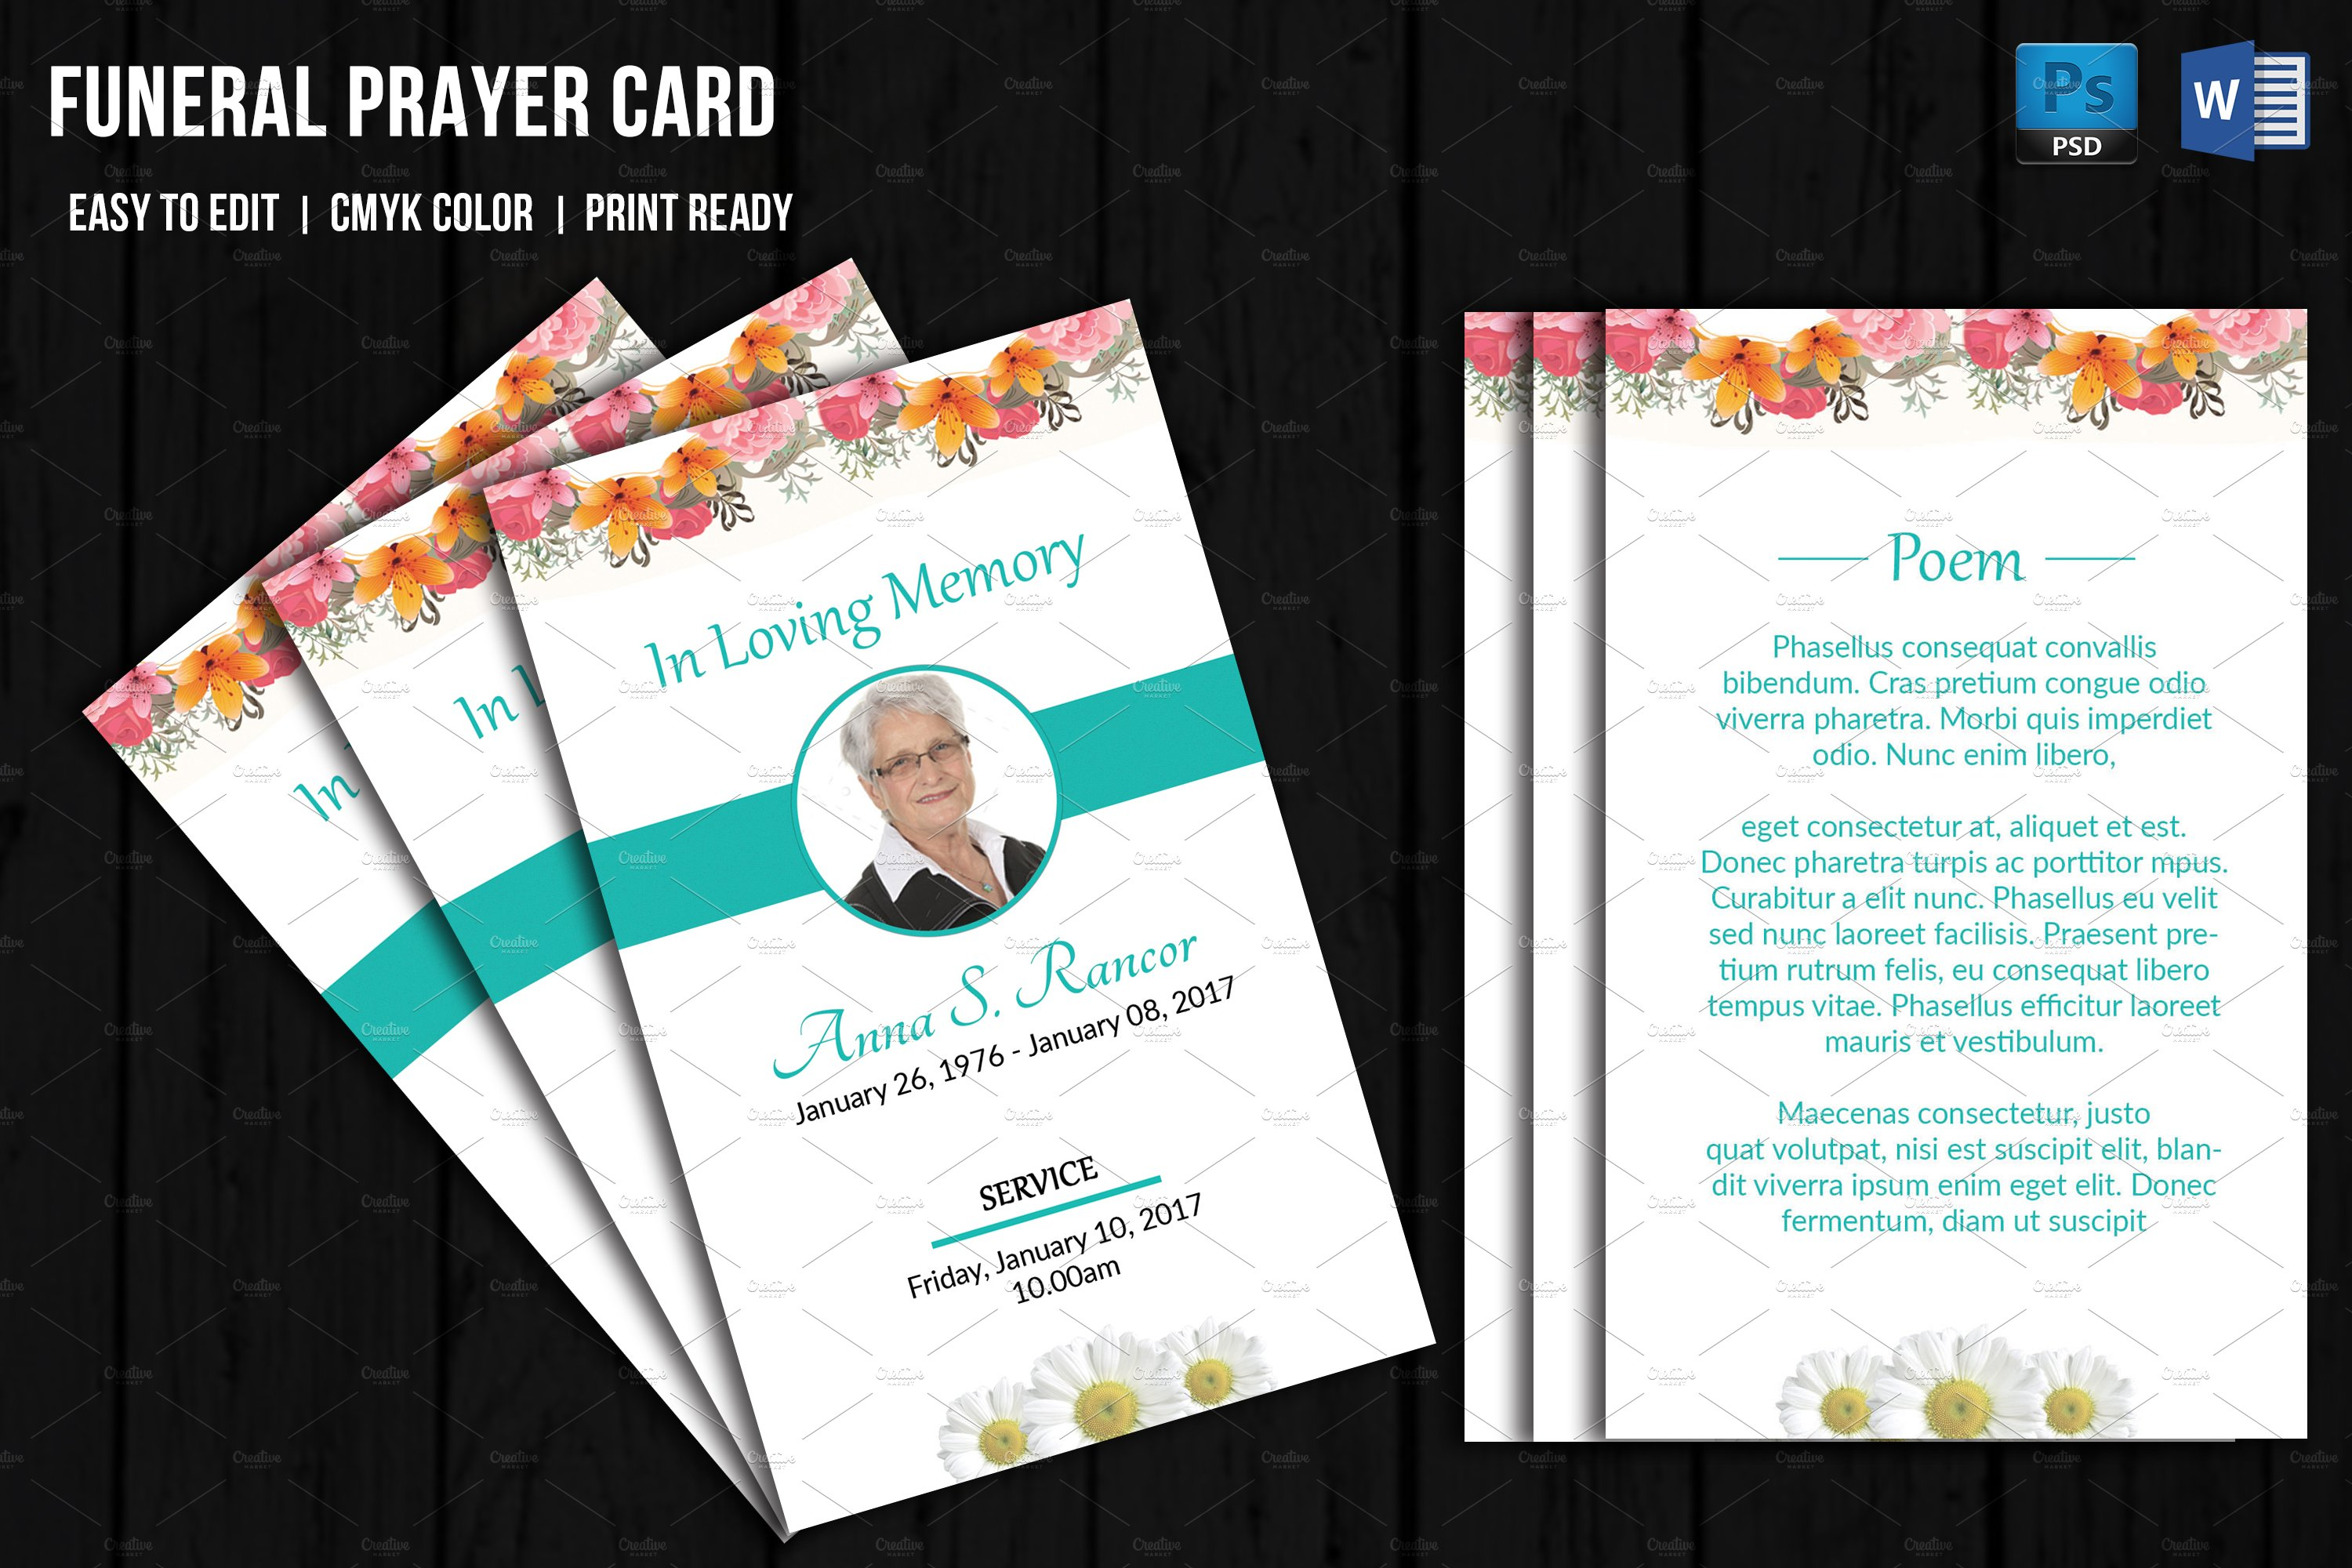 funeral prayer card template v656 card templates creative market. Black Bedroom Furniture Sets. Home Design Ideas